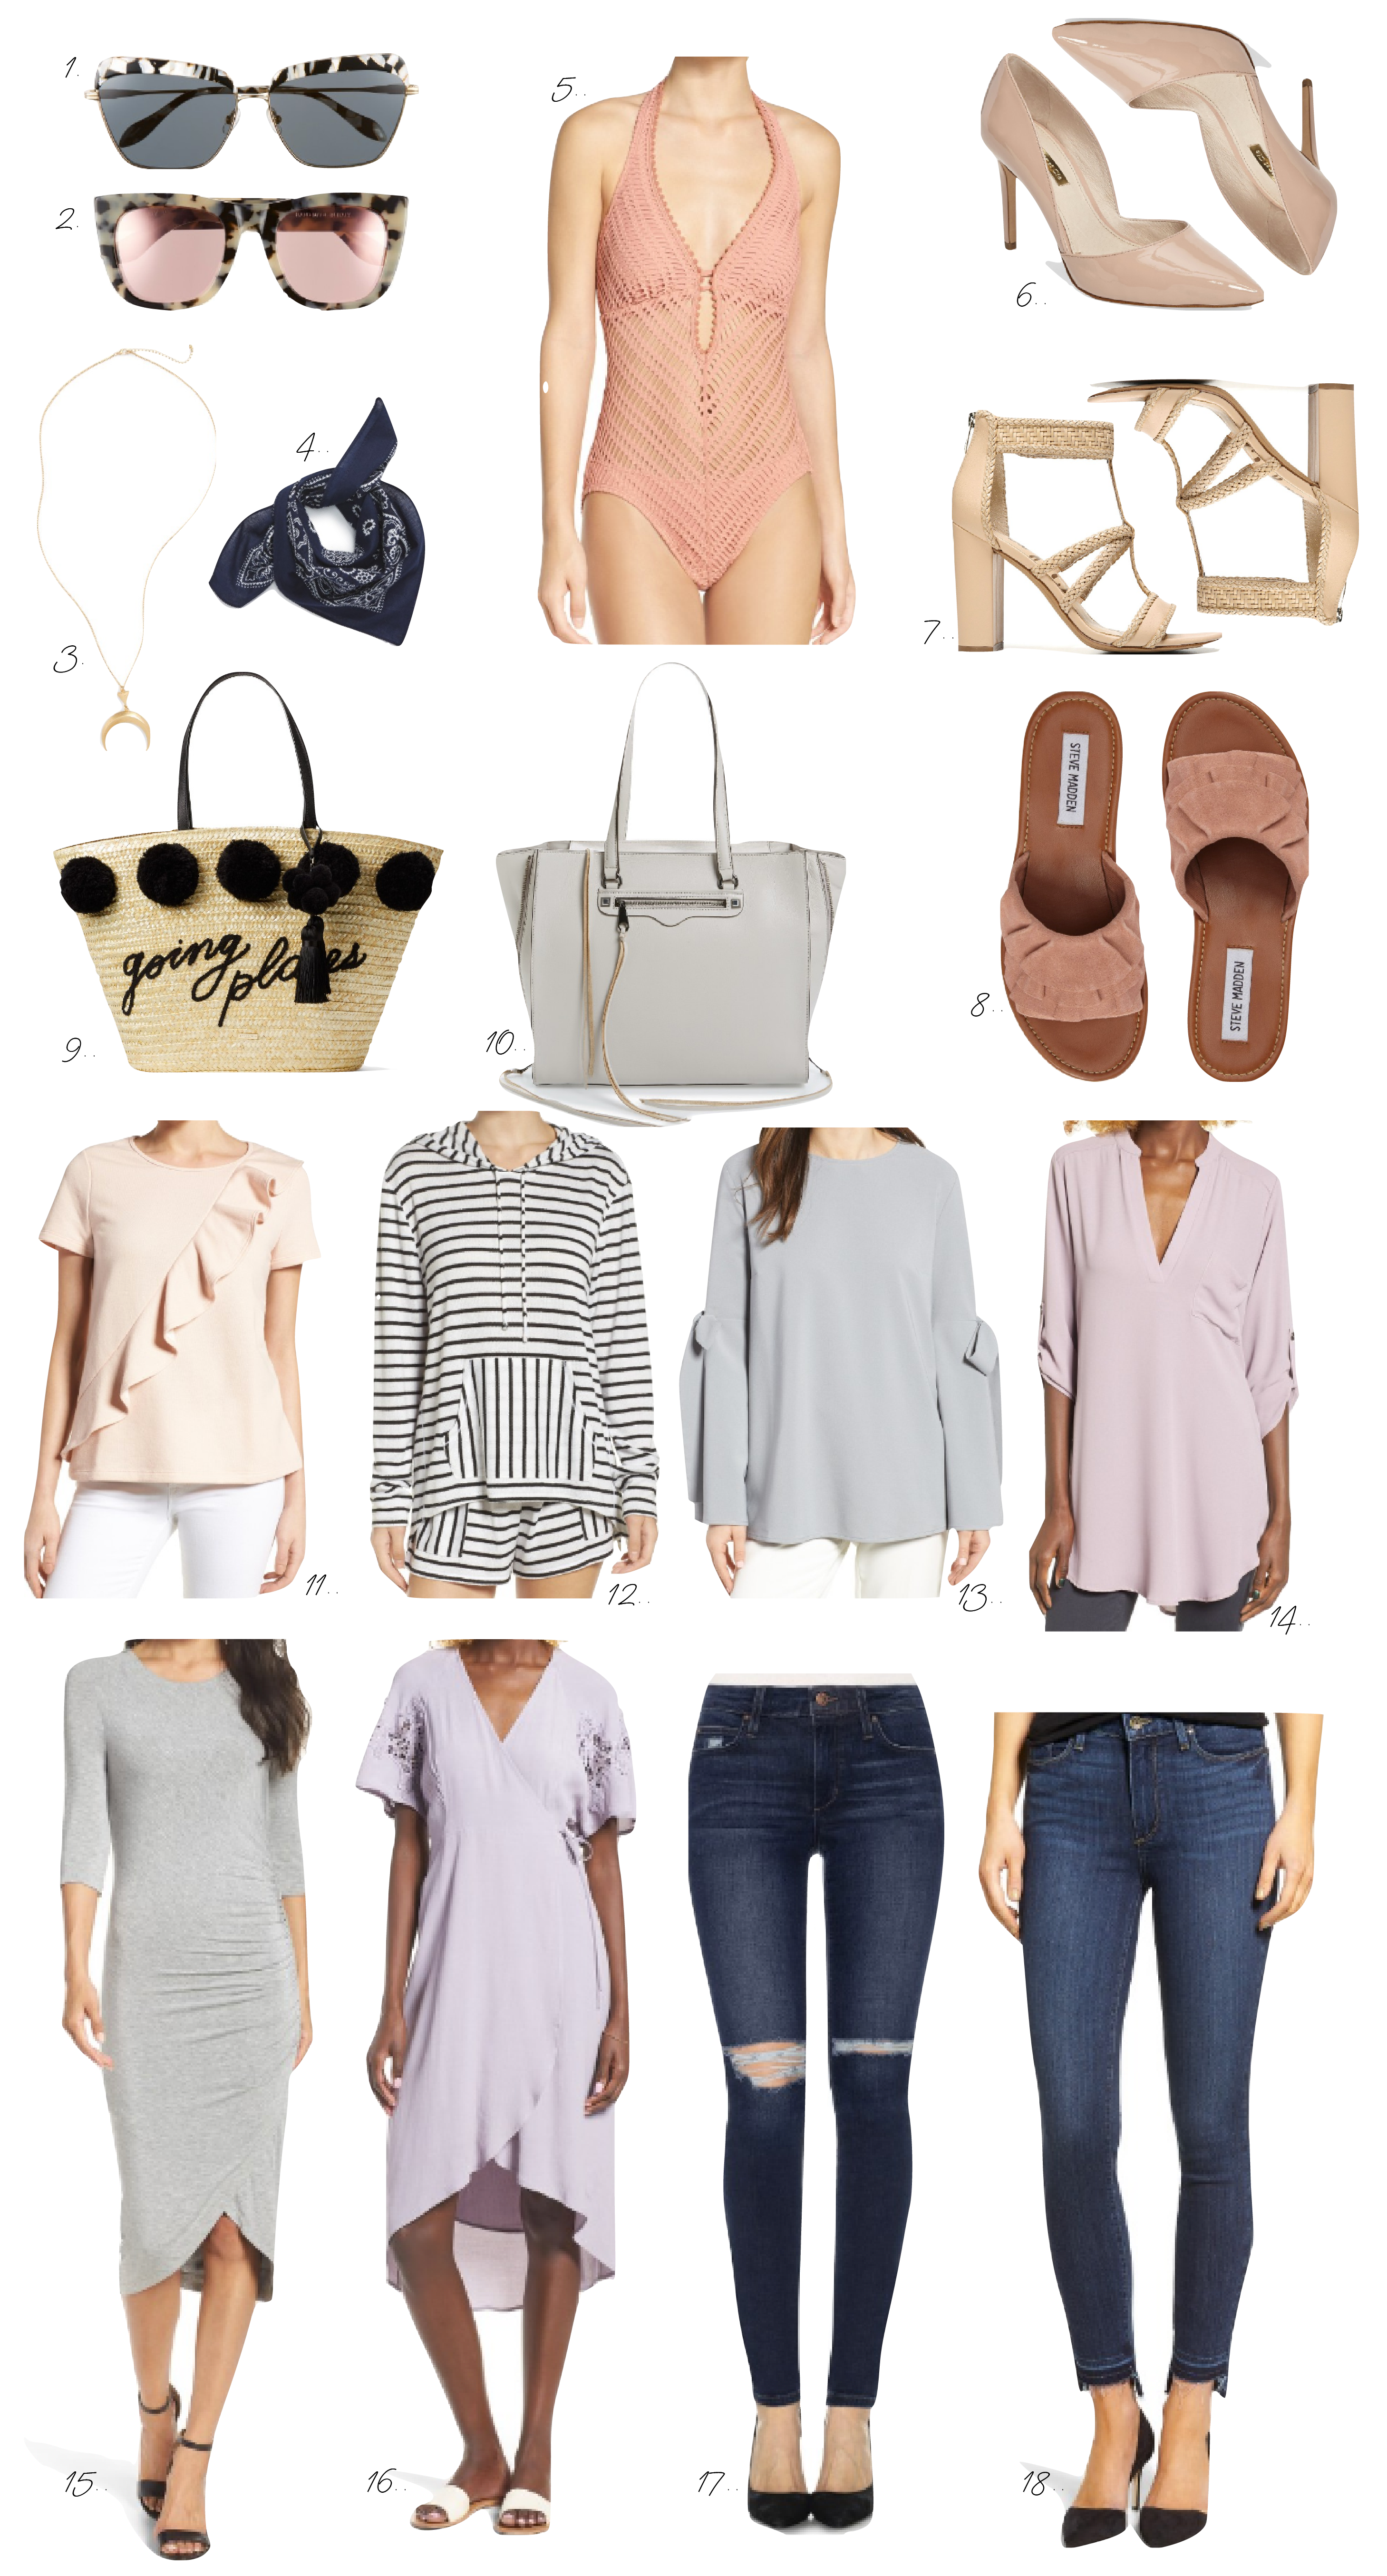 d160c4d96 THE BEST OF THE NORDSTROM HALF YEARLY SALE (ALL 40% OFF!) - Elle ...